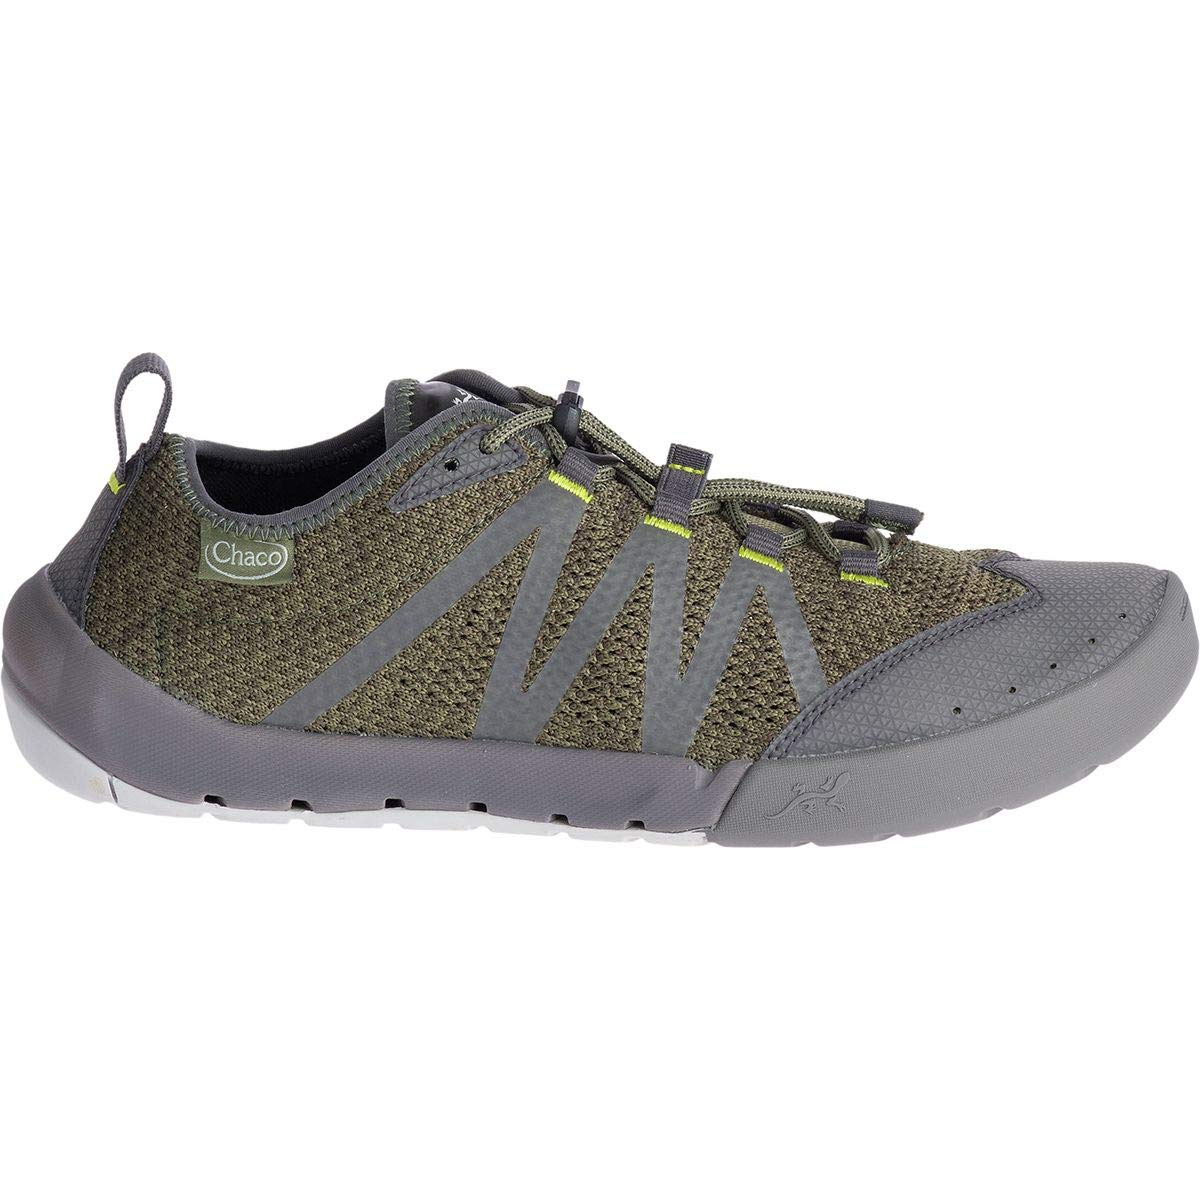 Chaco Torrent Pro Water Shoe - Men's Hunter, 8.0